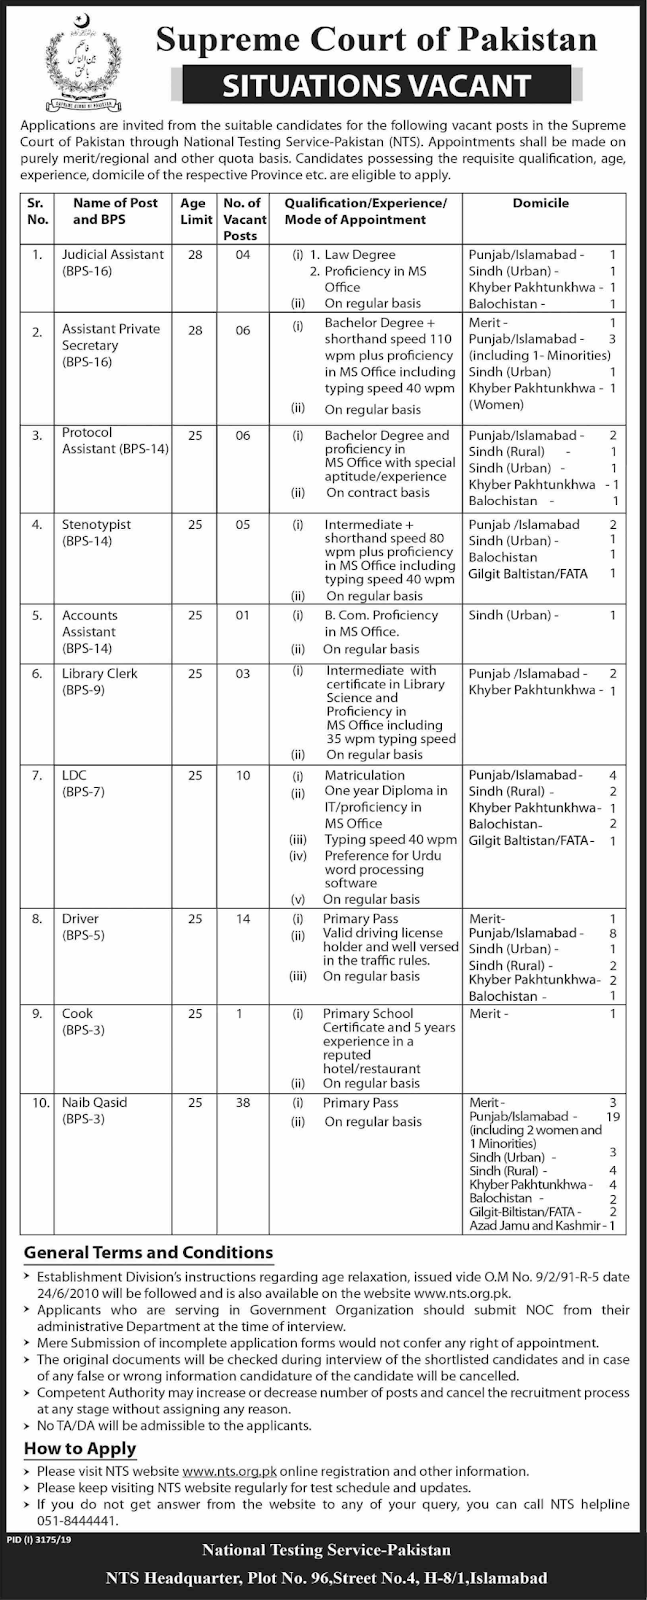 Supreme Court of Pakistan Jobs 2019